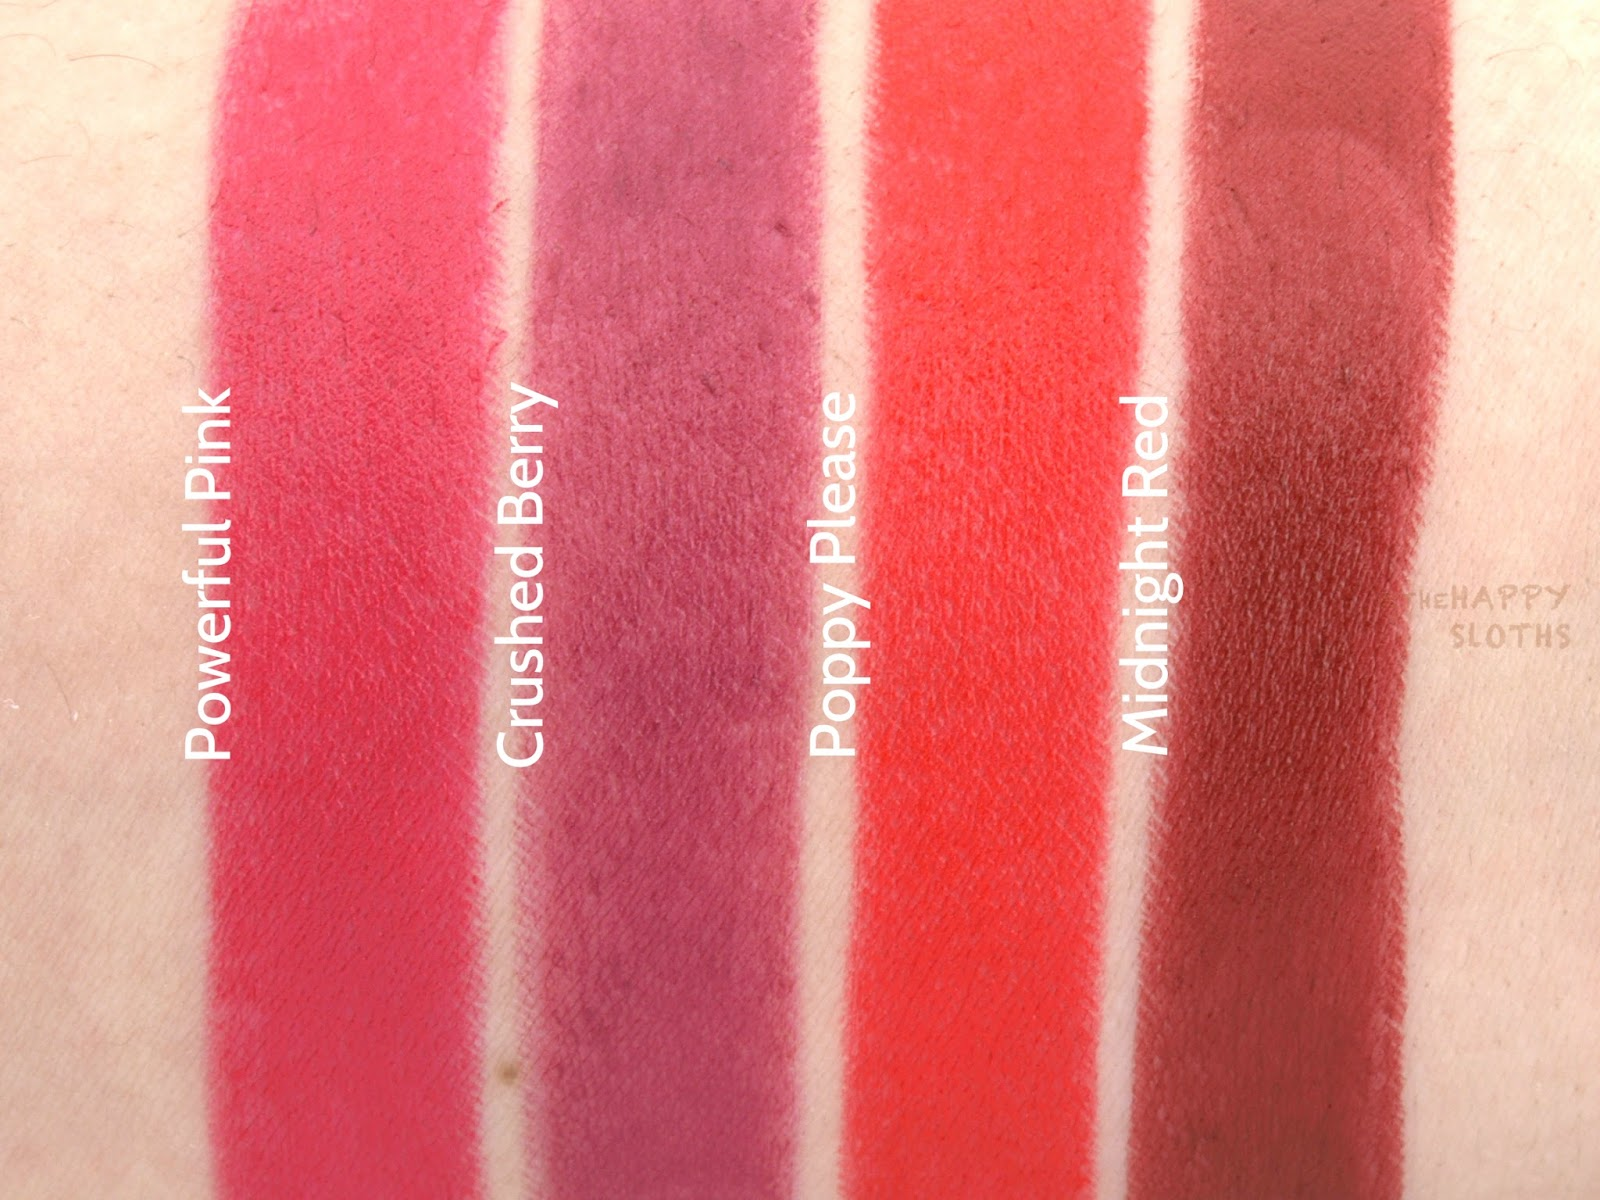 Mary Kay Fall 2016 | Gel Semi-Matte Lipsticks: Review and Swatches ...